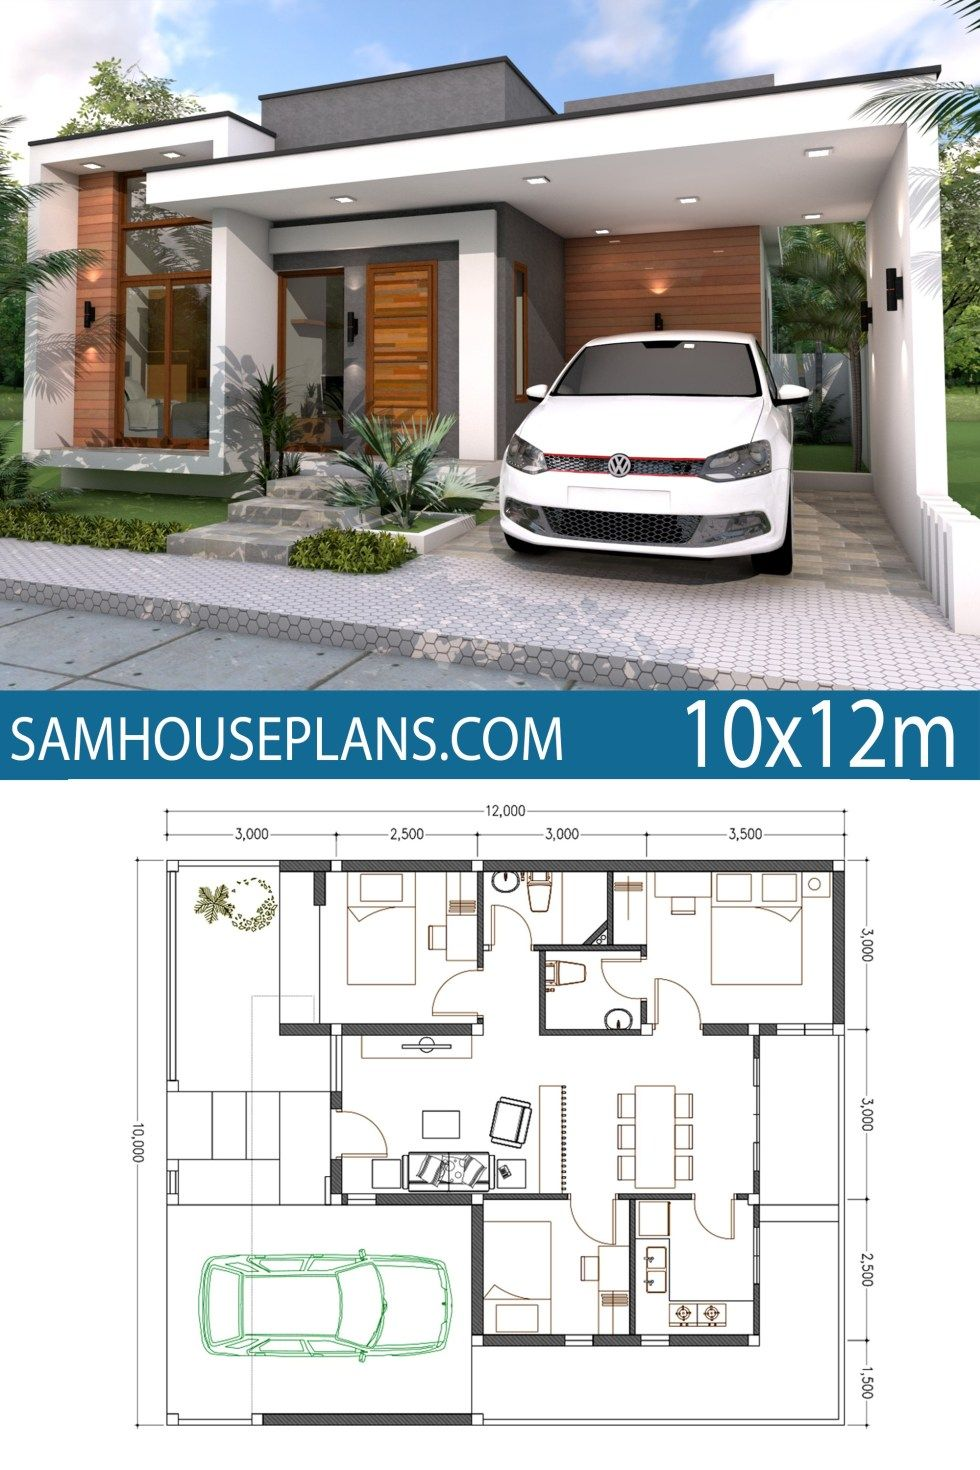 Home Plan 10x12m 3 Bedrooms Sam House Plans Contemporary House Plans Model House Plan New House Plans